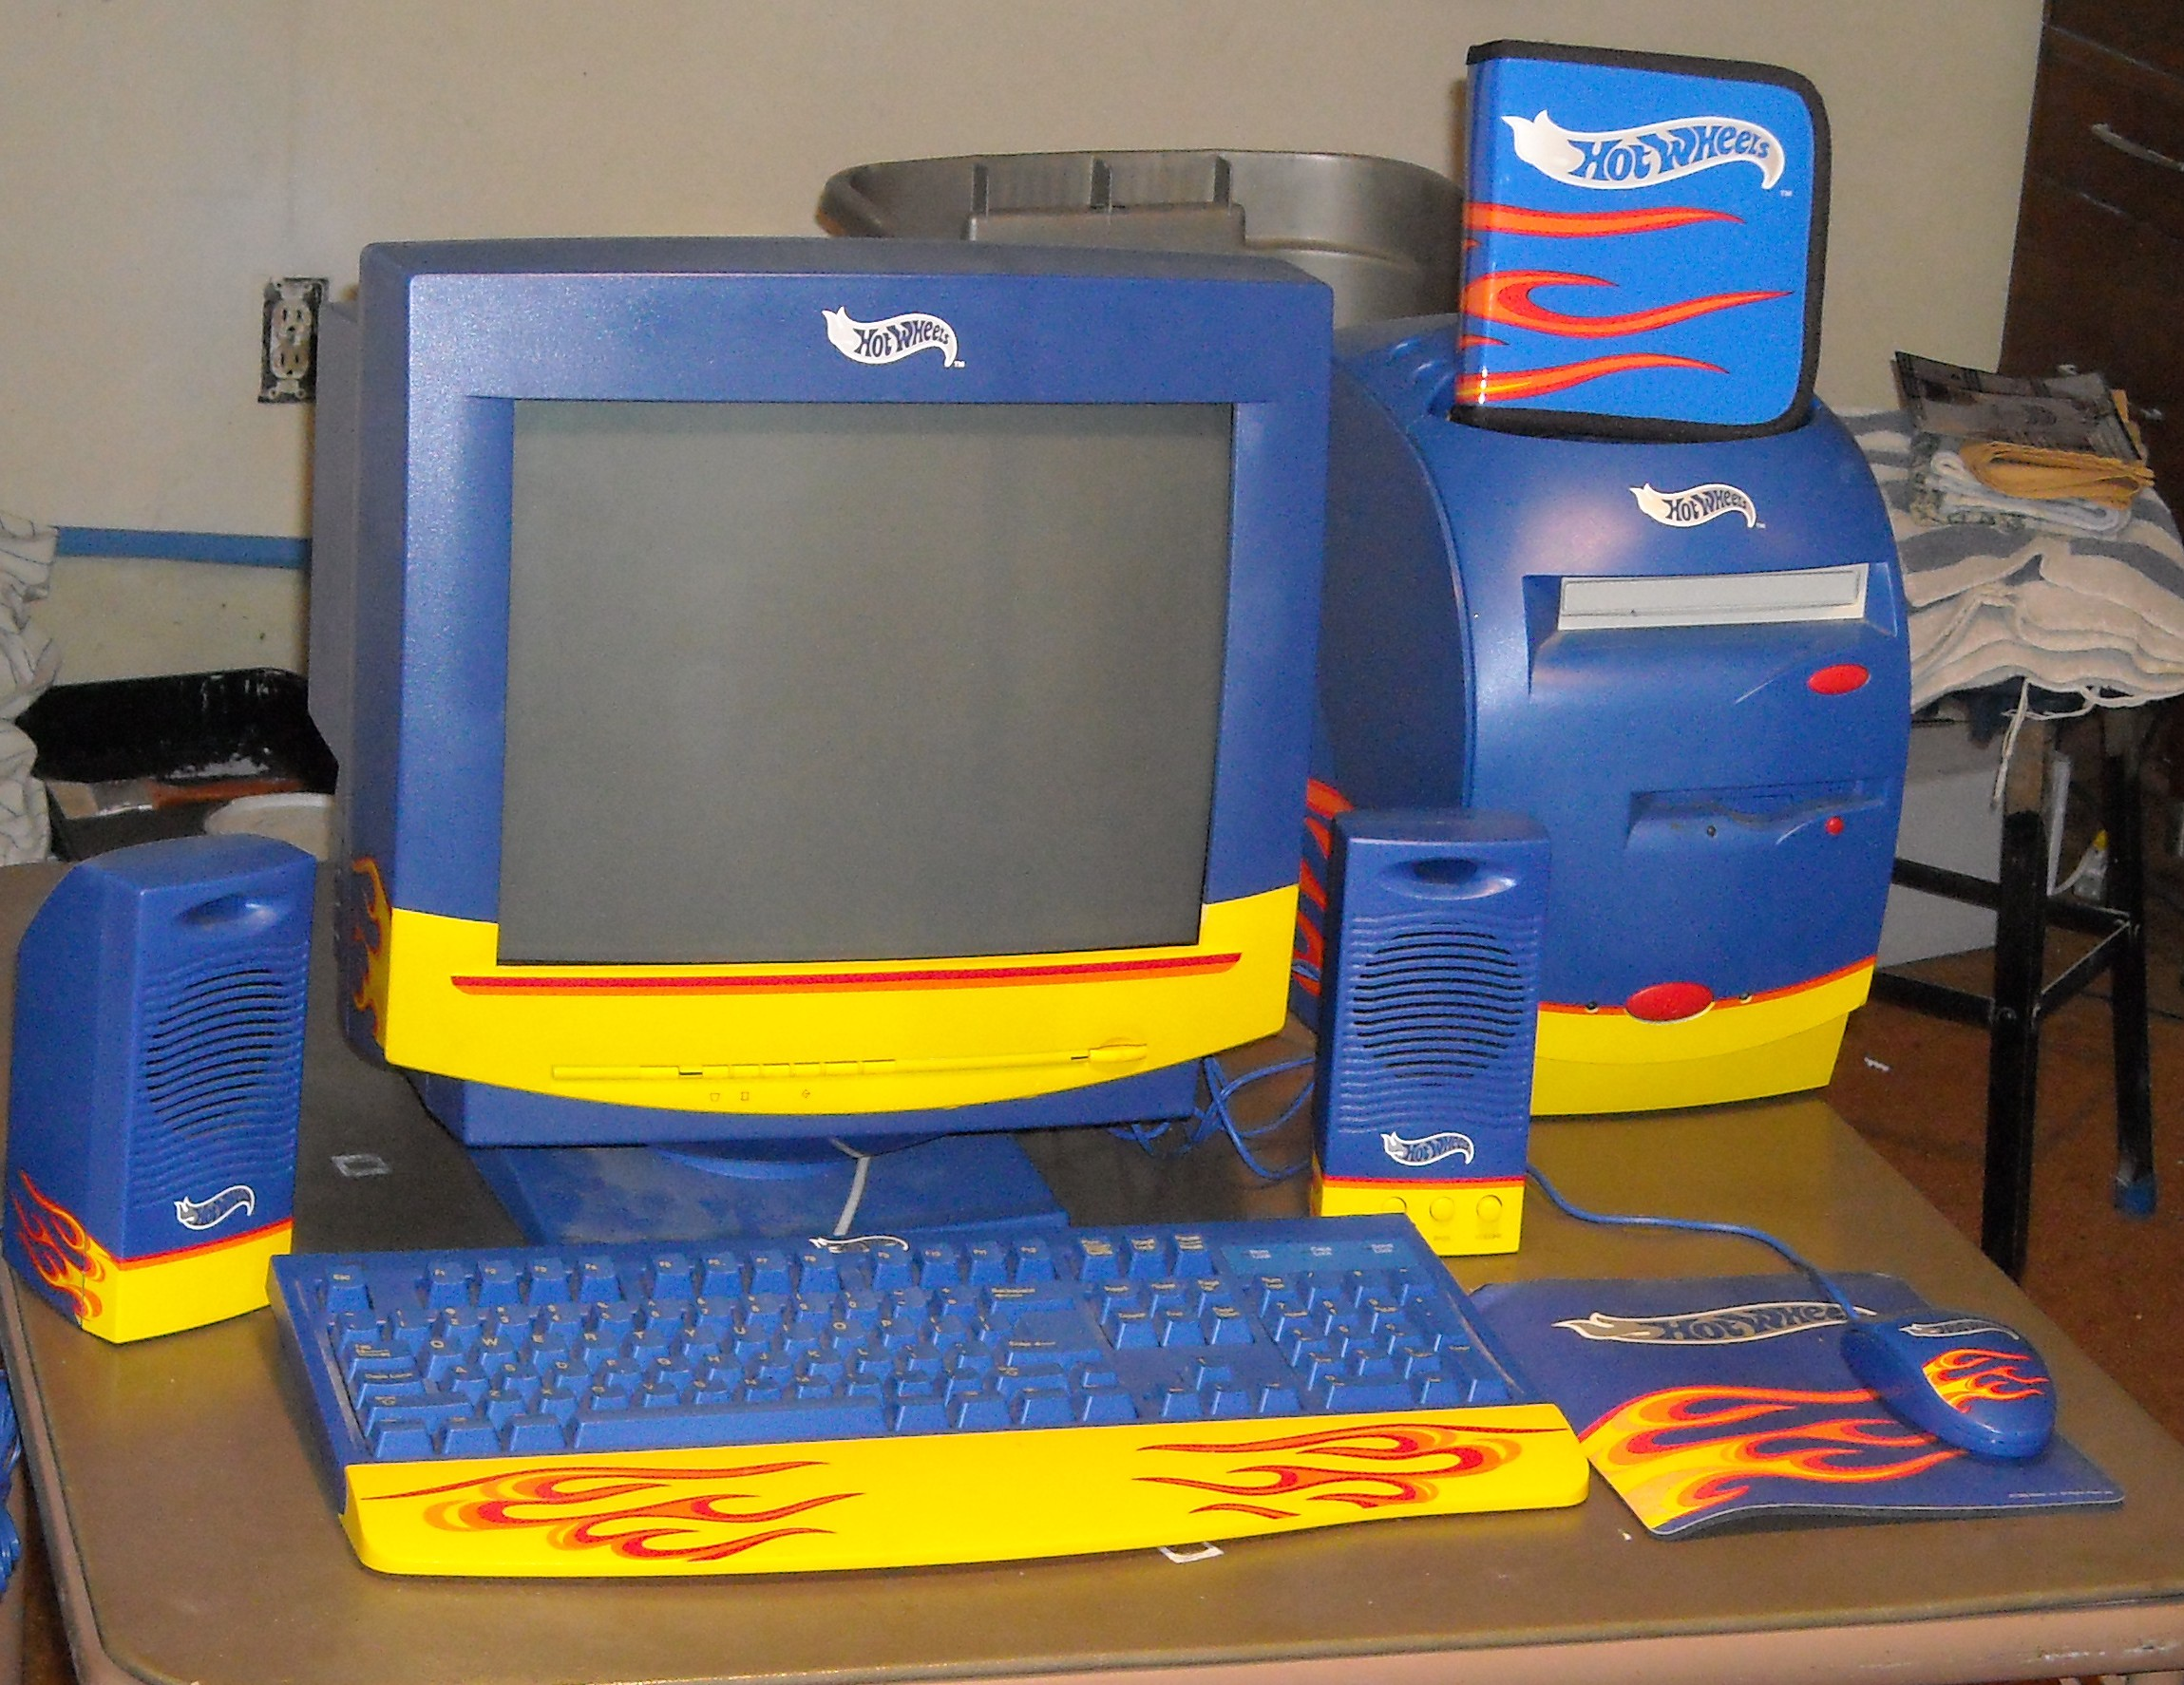 Bad Pc Setup Hot Wheels Computer ( By Patriot) | Applefritter